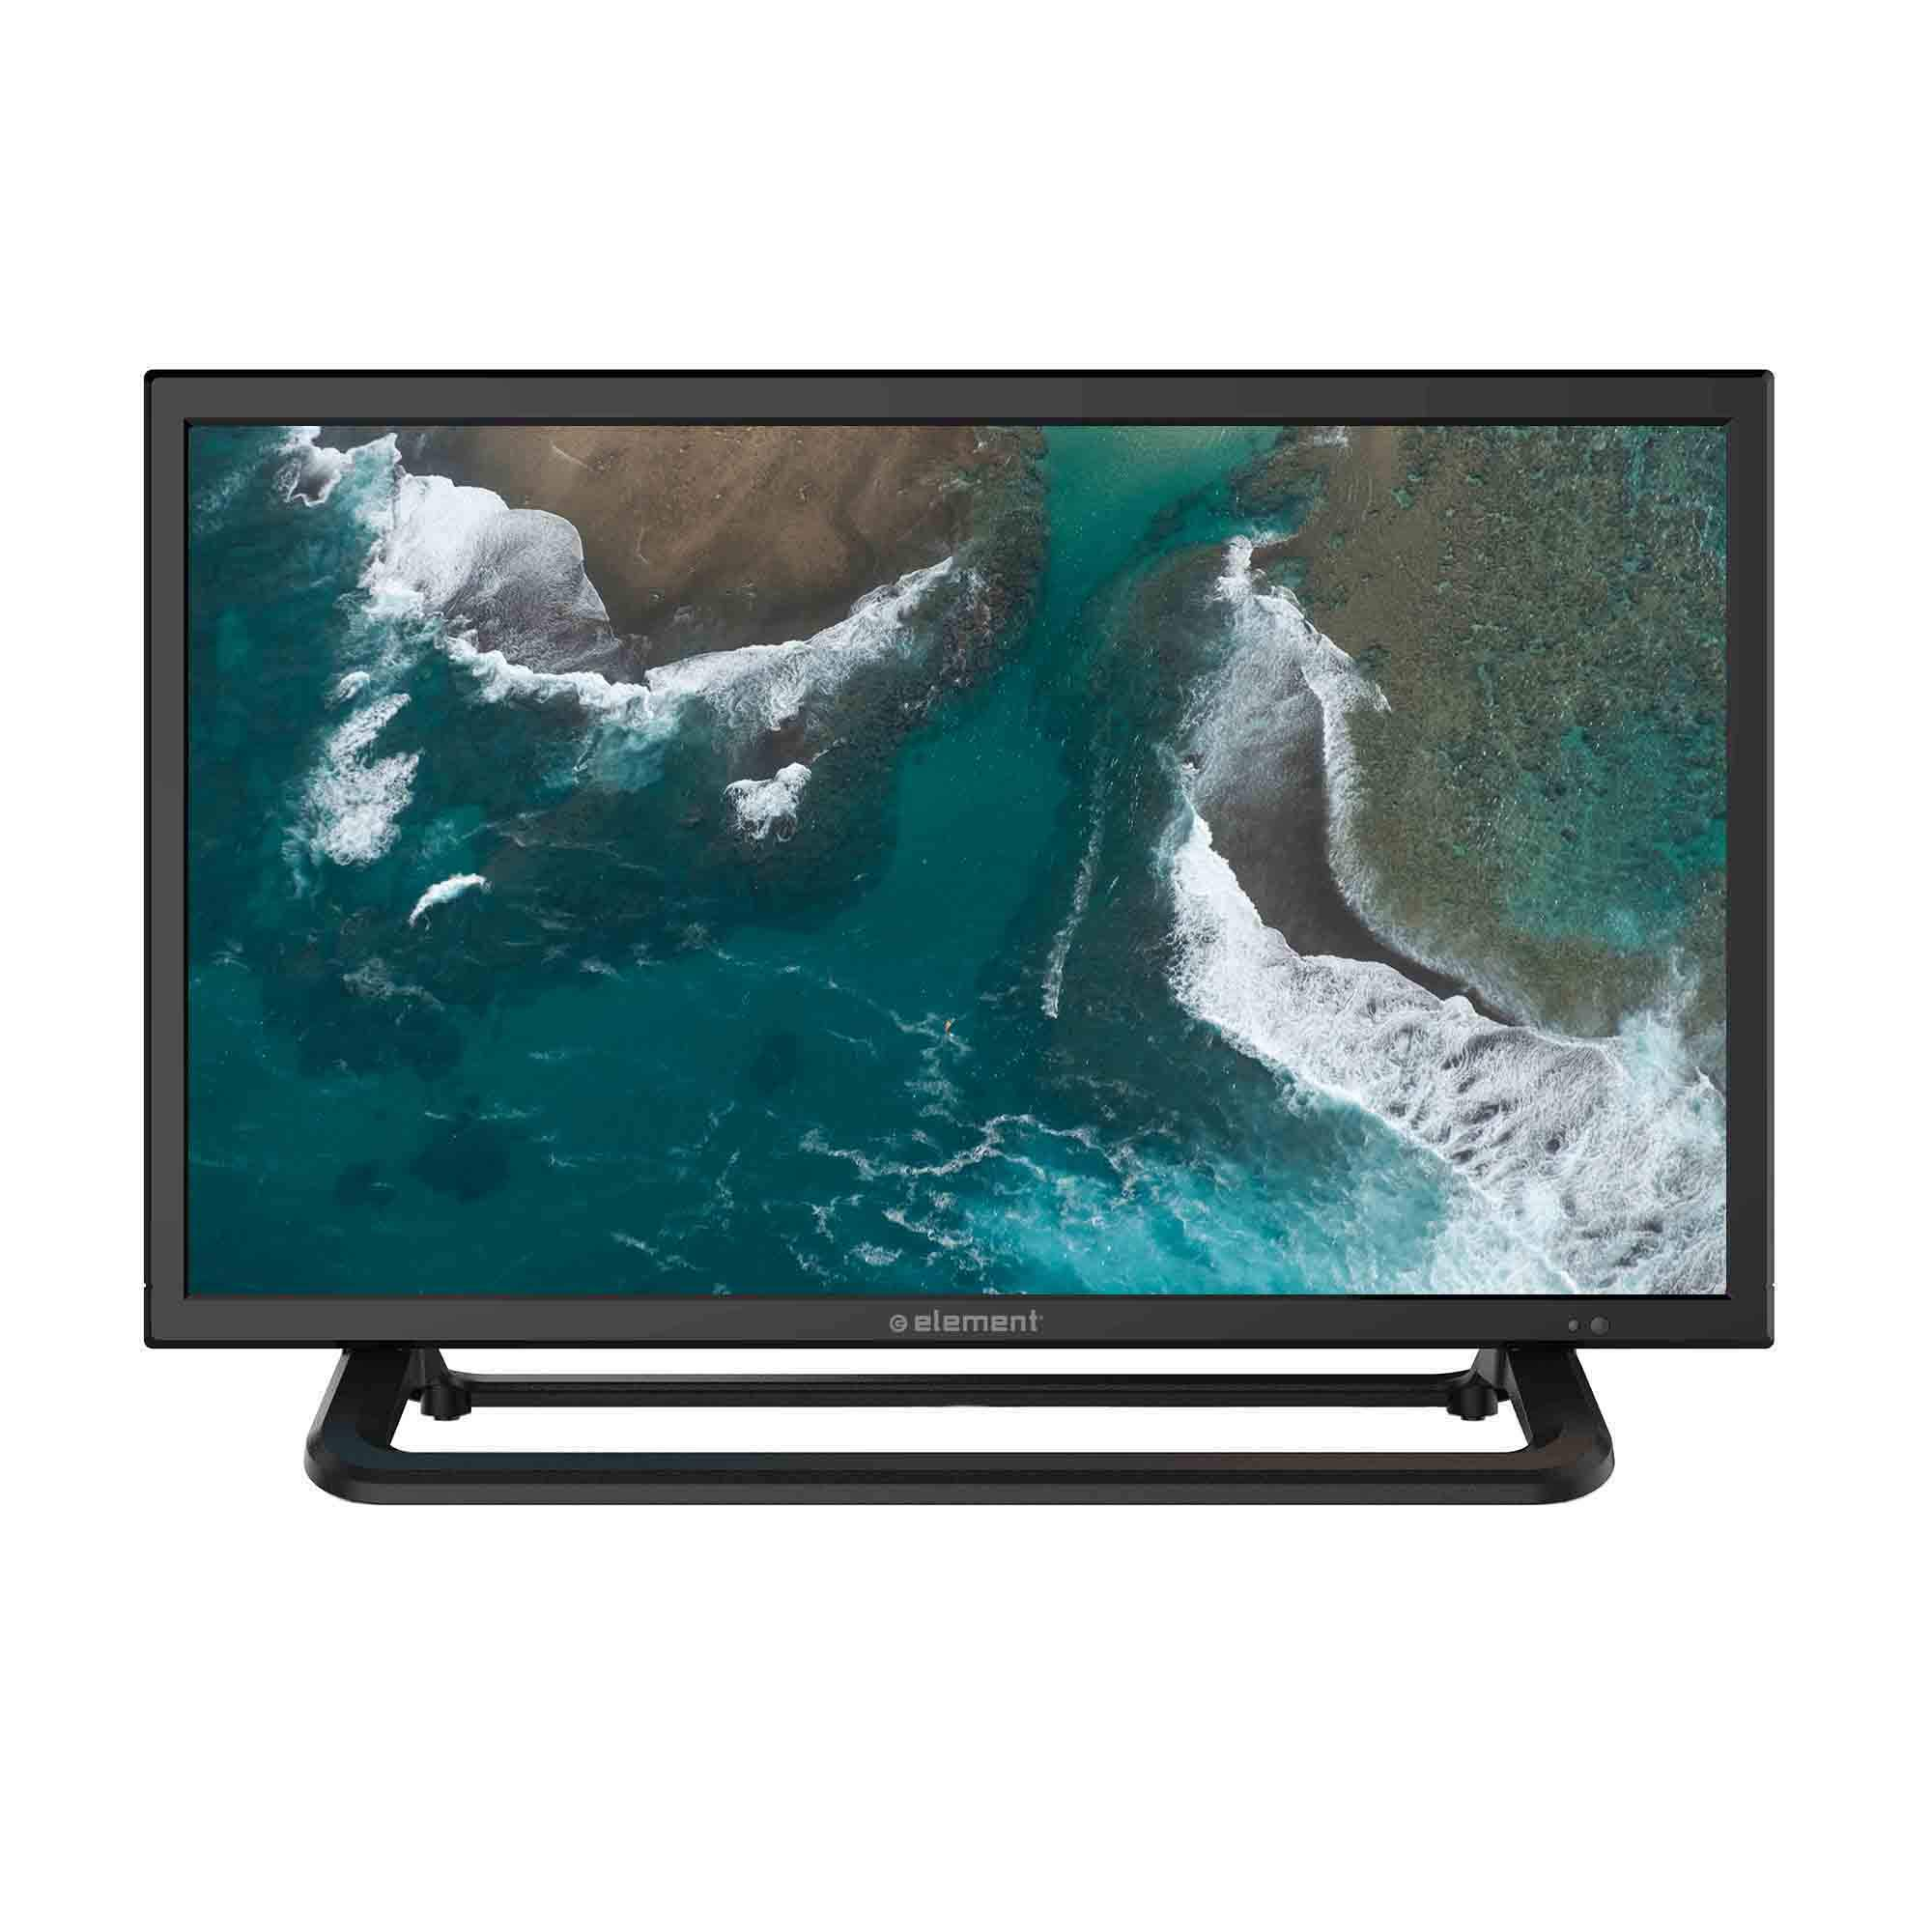 Element ELEFW195R 19″ 720p HDTV (Certified Refurbished)